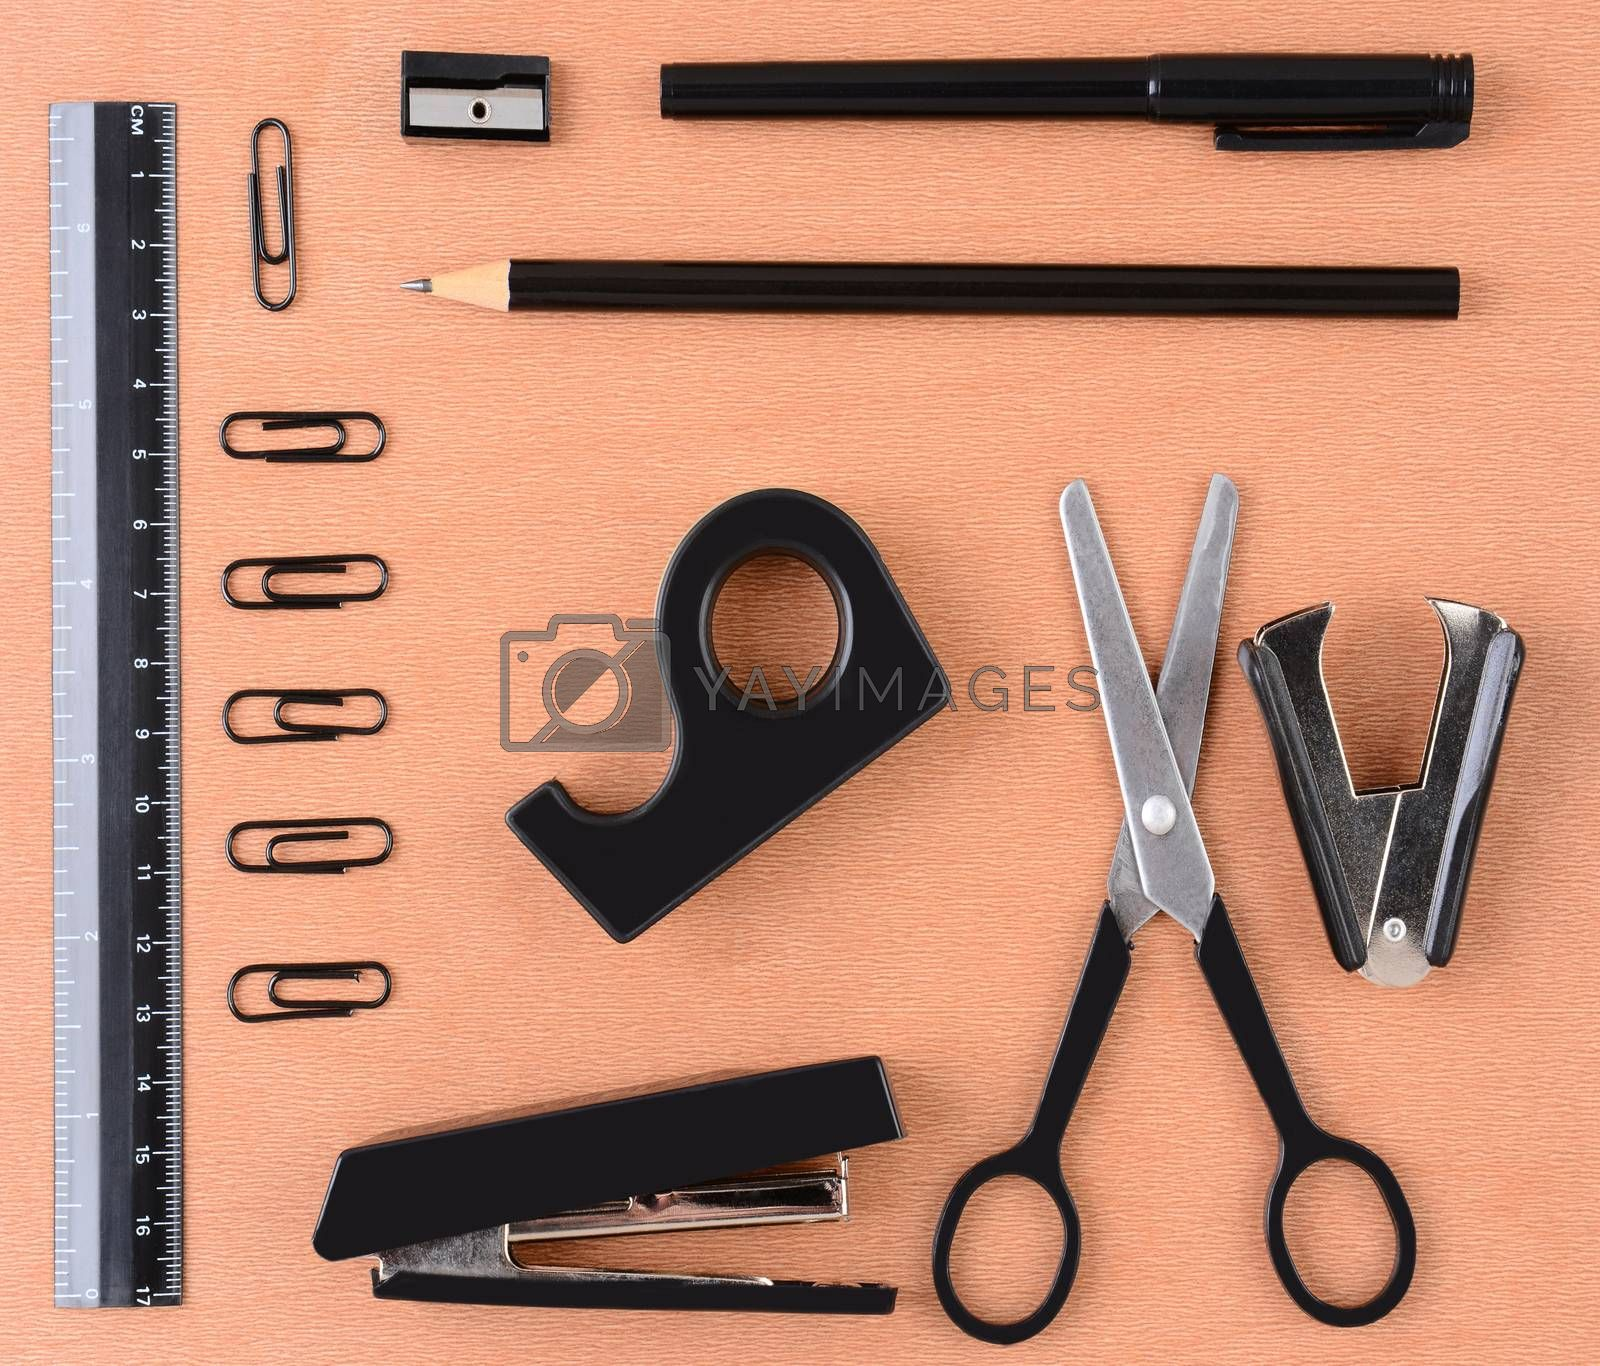 School or Office Supplies on a wood desk top. Square format showing various items that are all black in color.